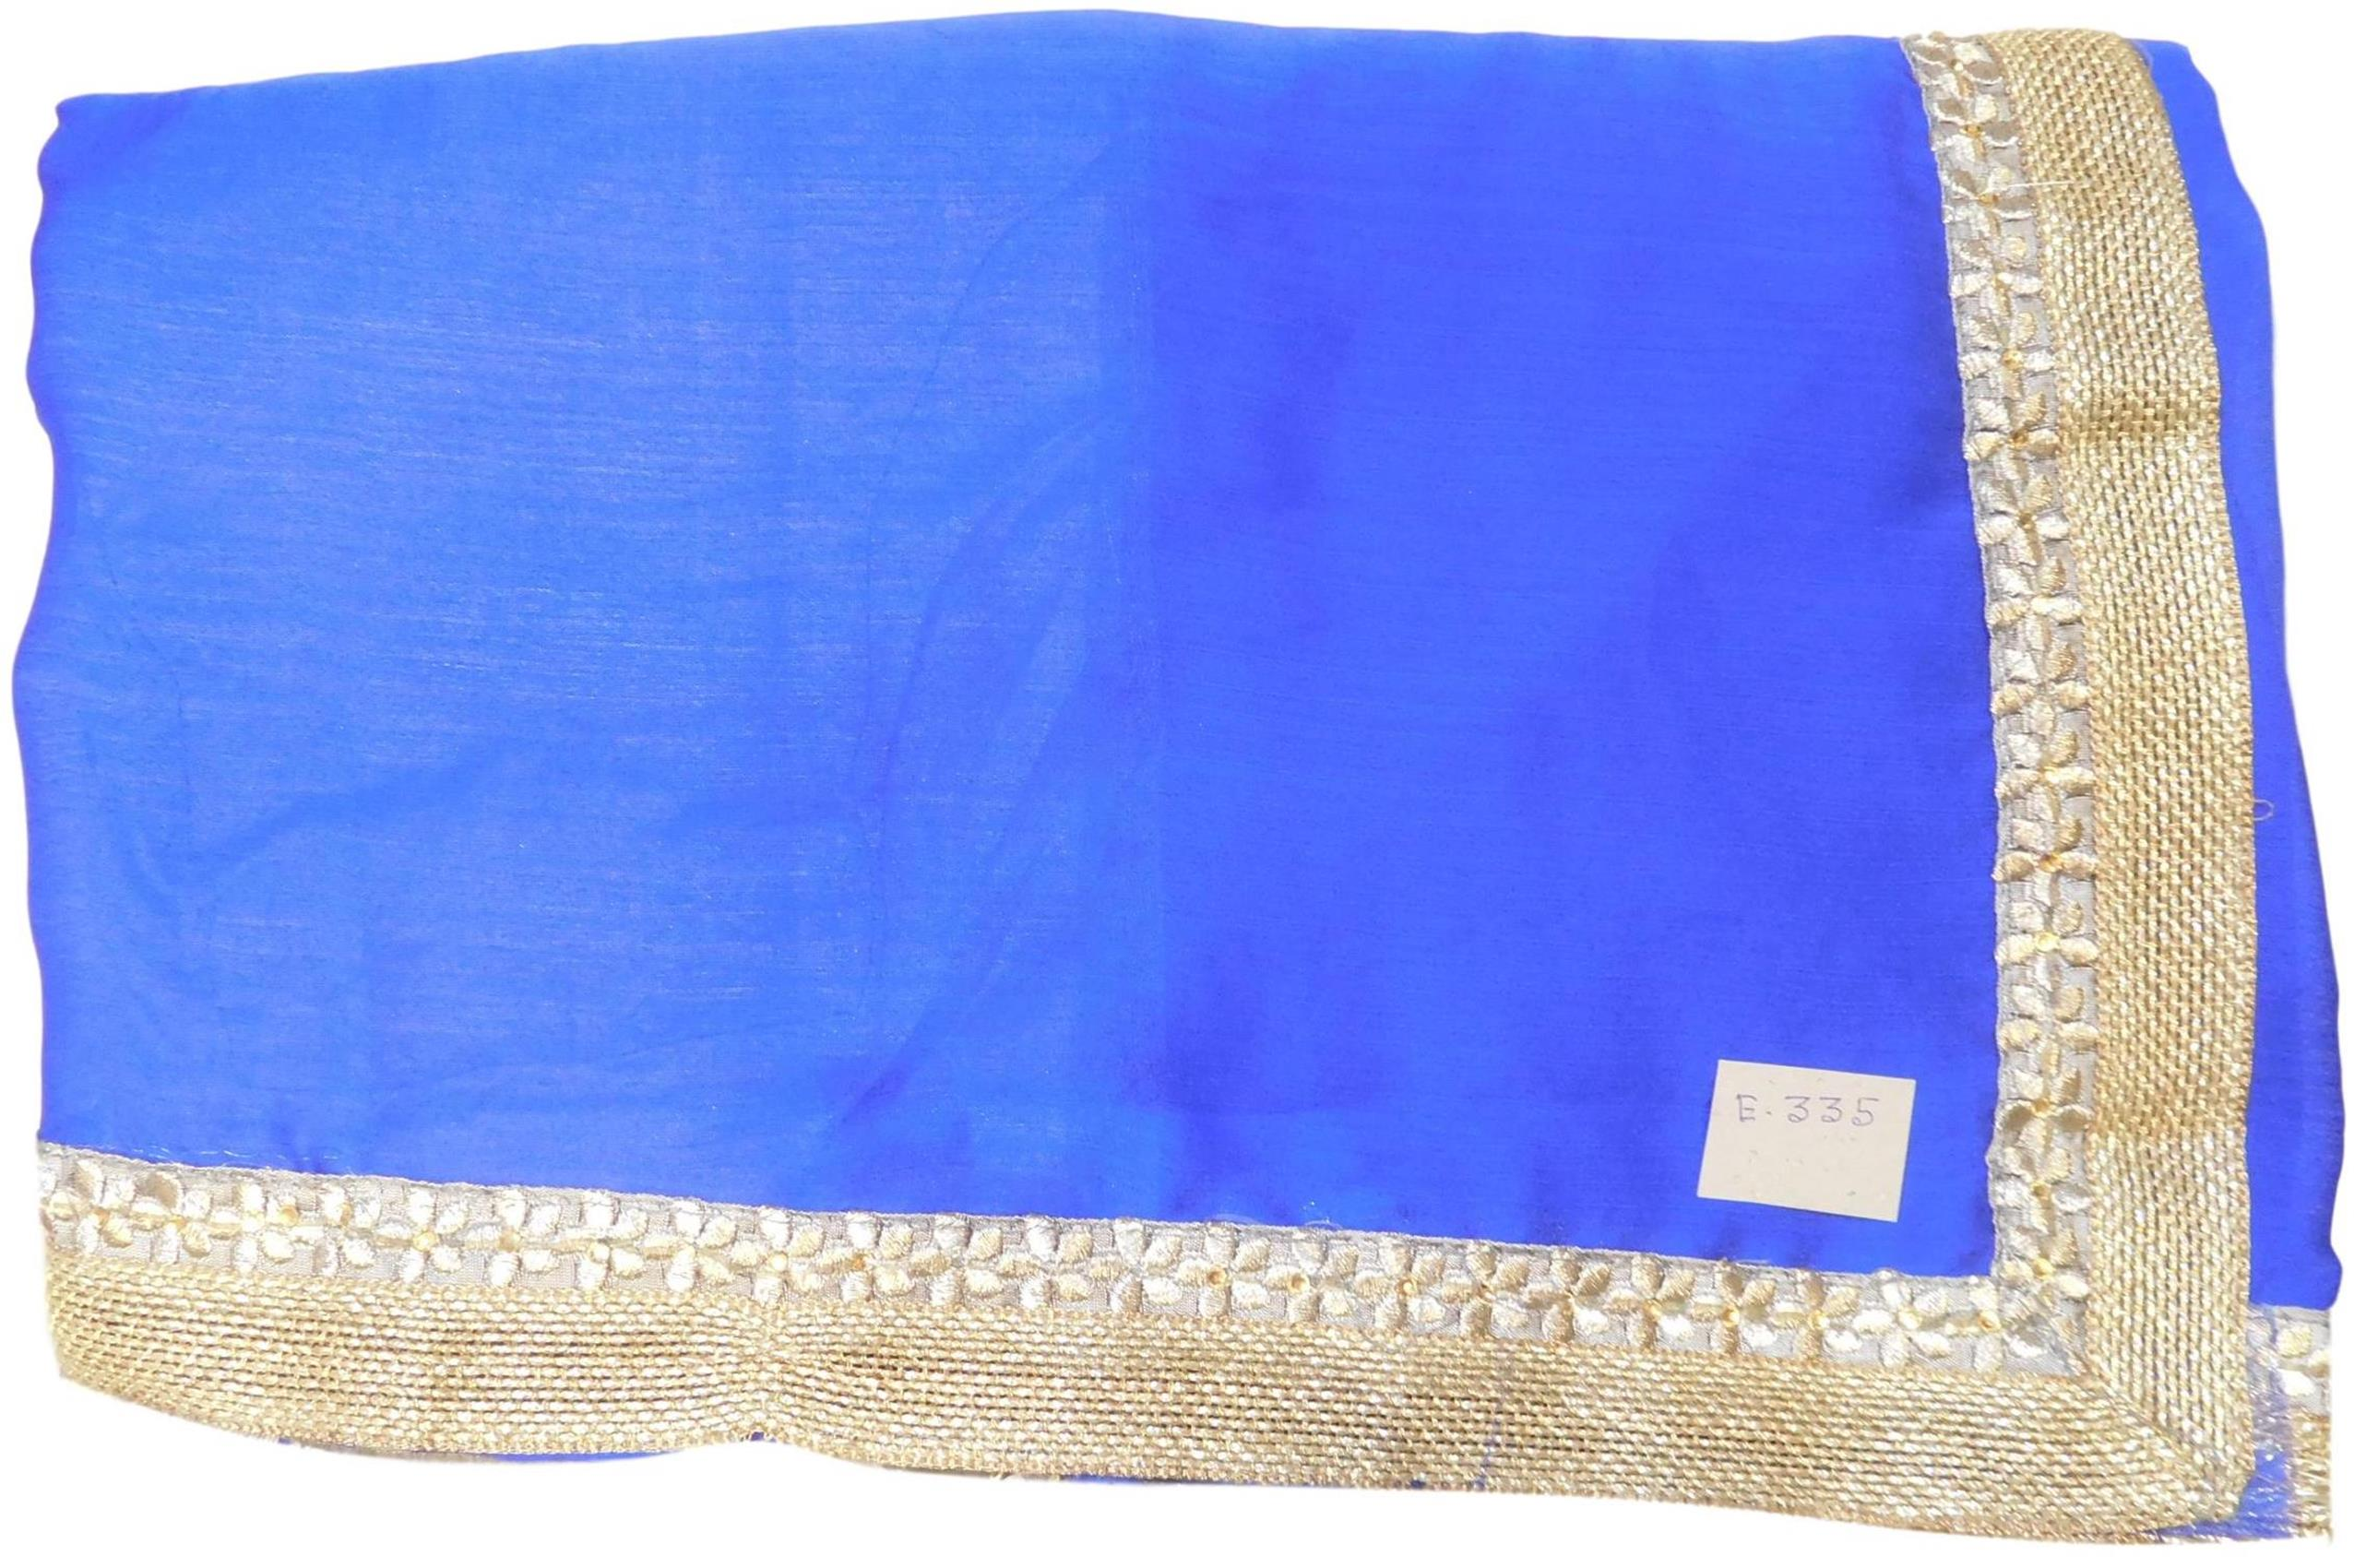 Blue Designer Wedding Partywear Ethnic Bridal Crepe Hand Embroidery Thread Stone Work Kolkata Women Saree Sari E335